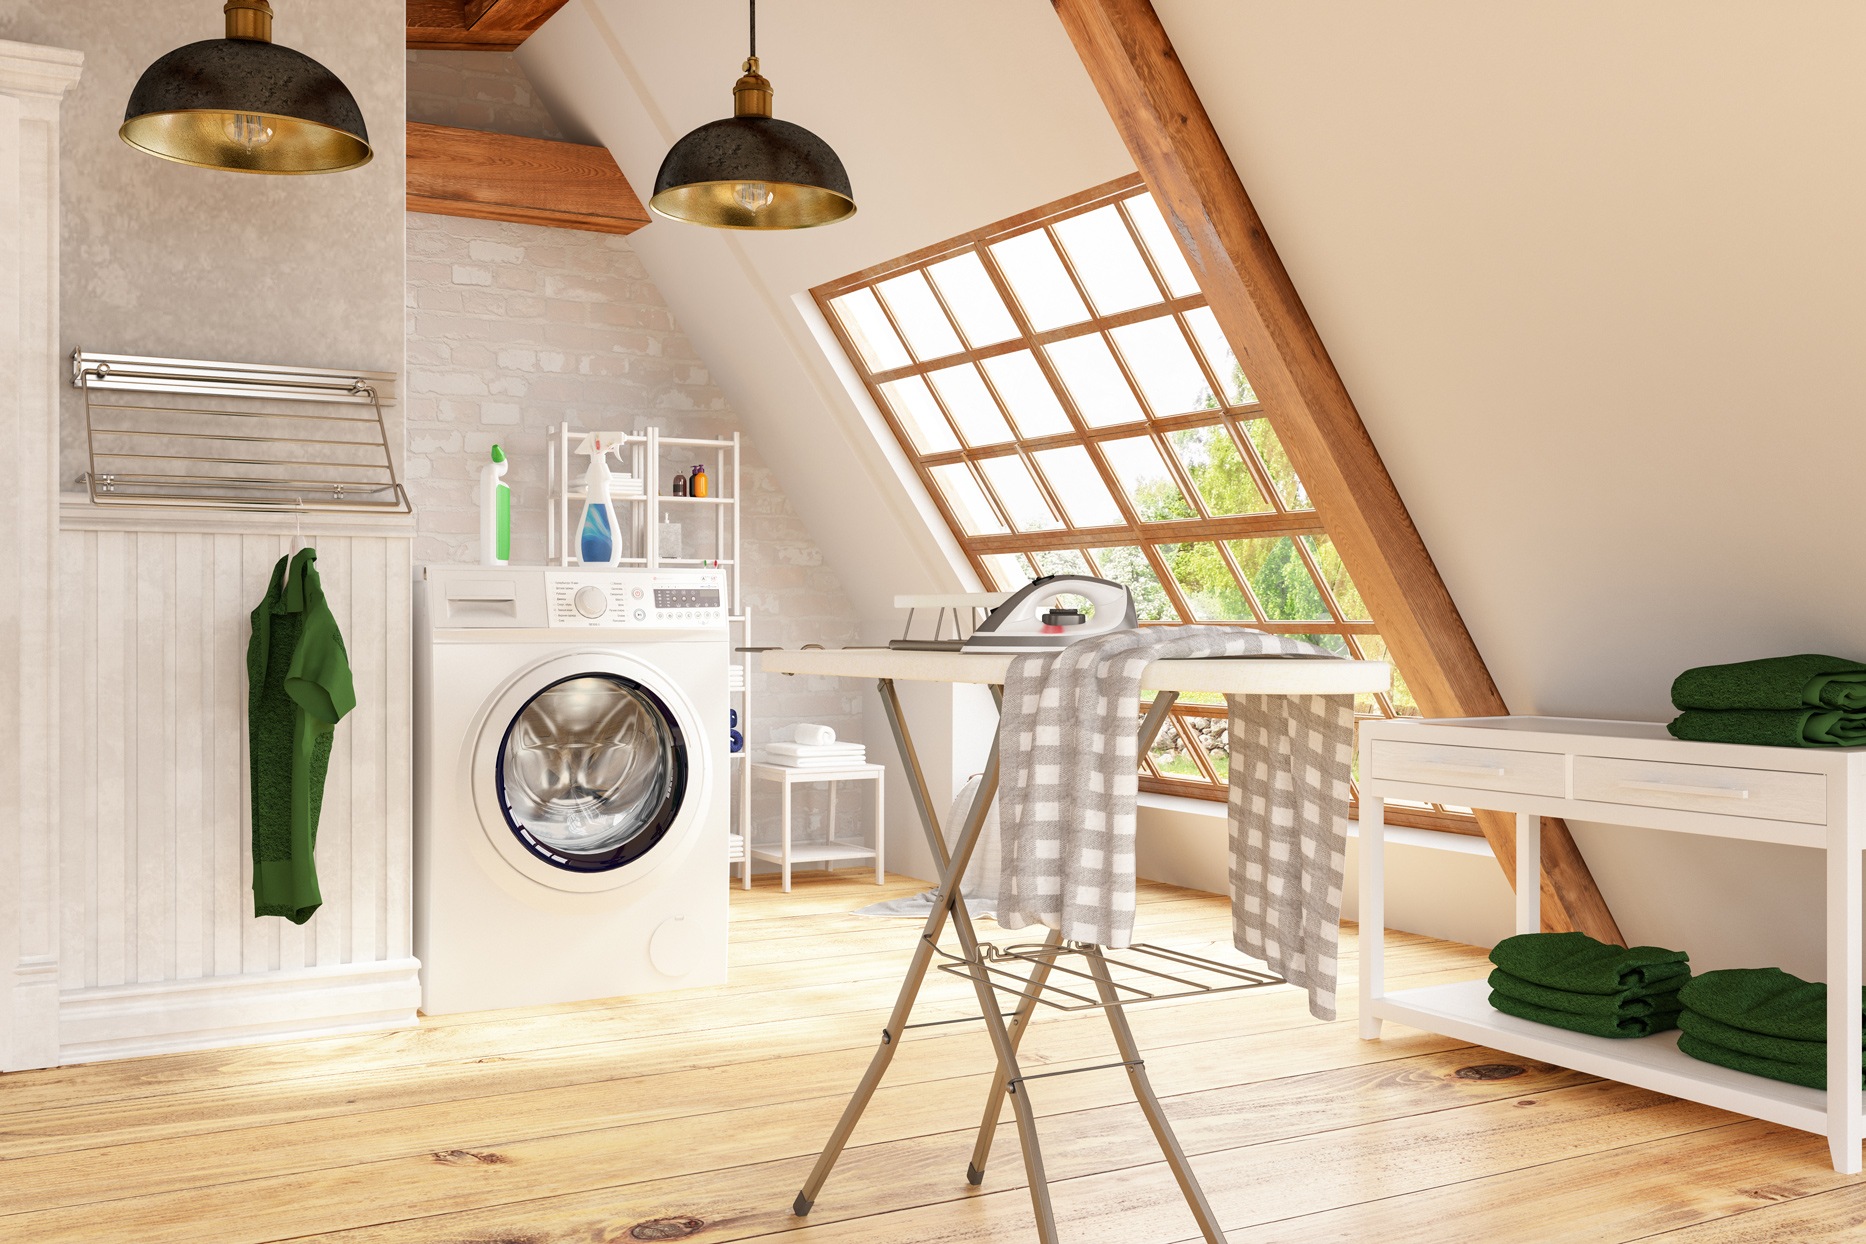 modern upgraded laundry room with ironing board